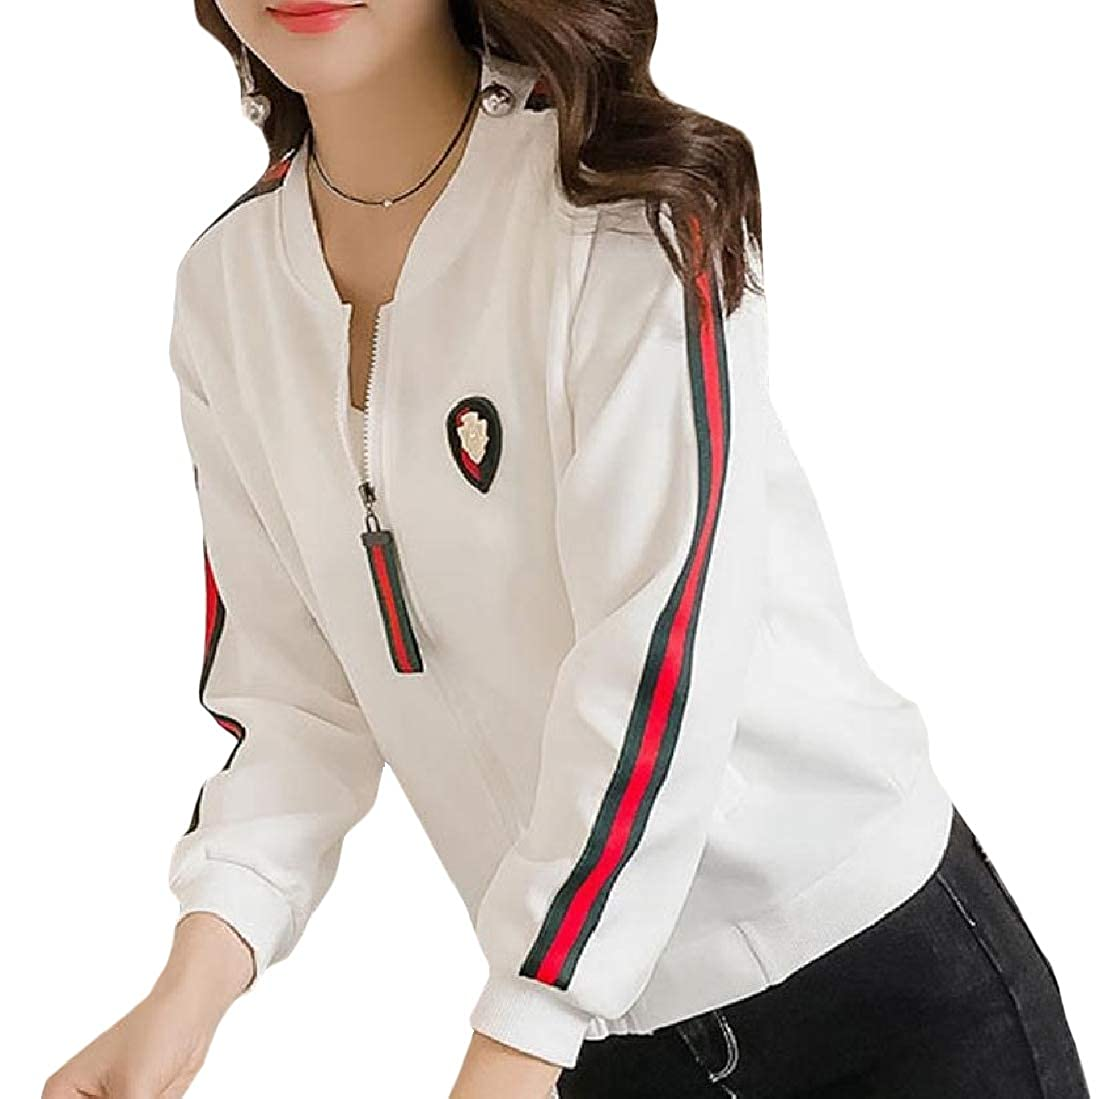 Comaba Womens Pocket Stand Collar Zip Splicing Skinny Stripes Outwear Jacket